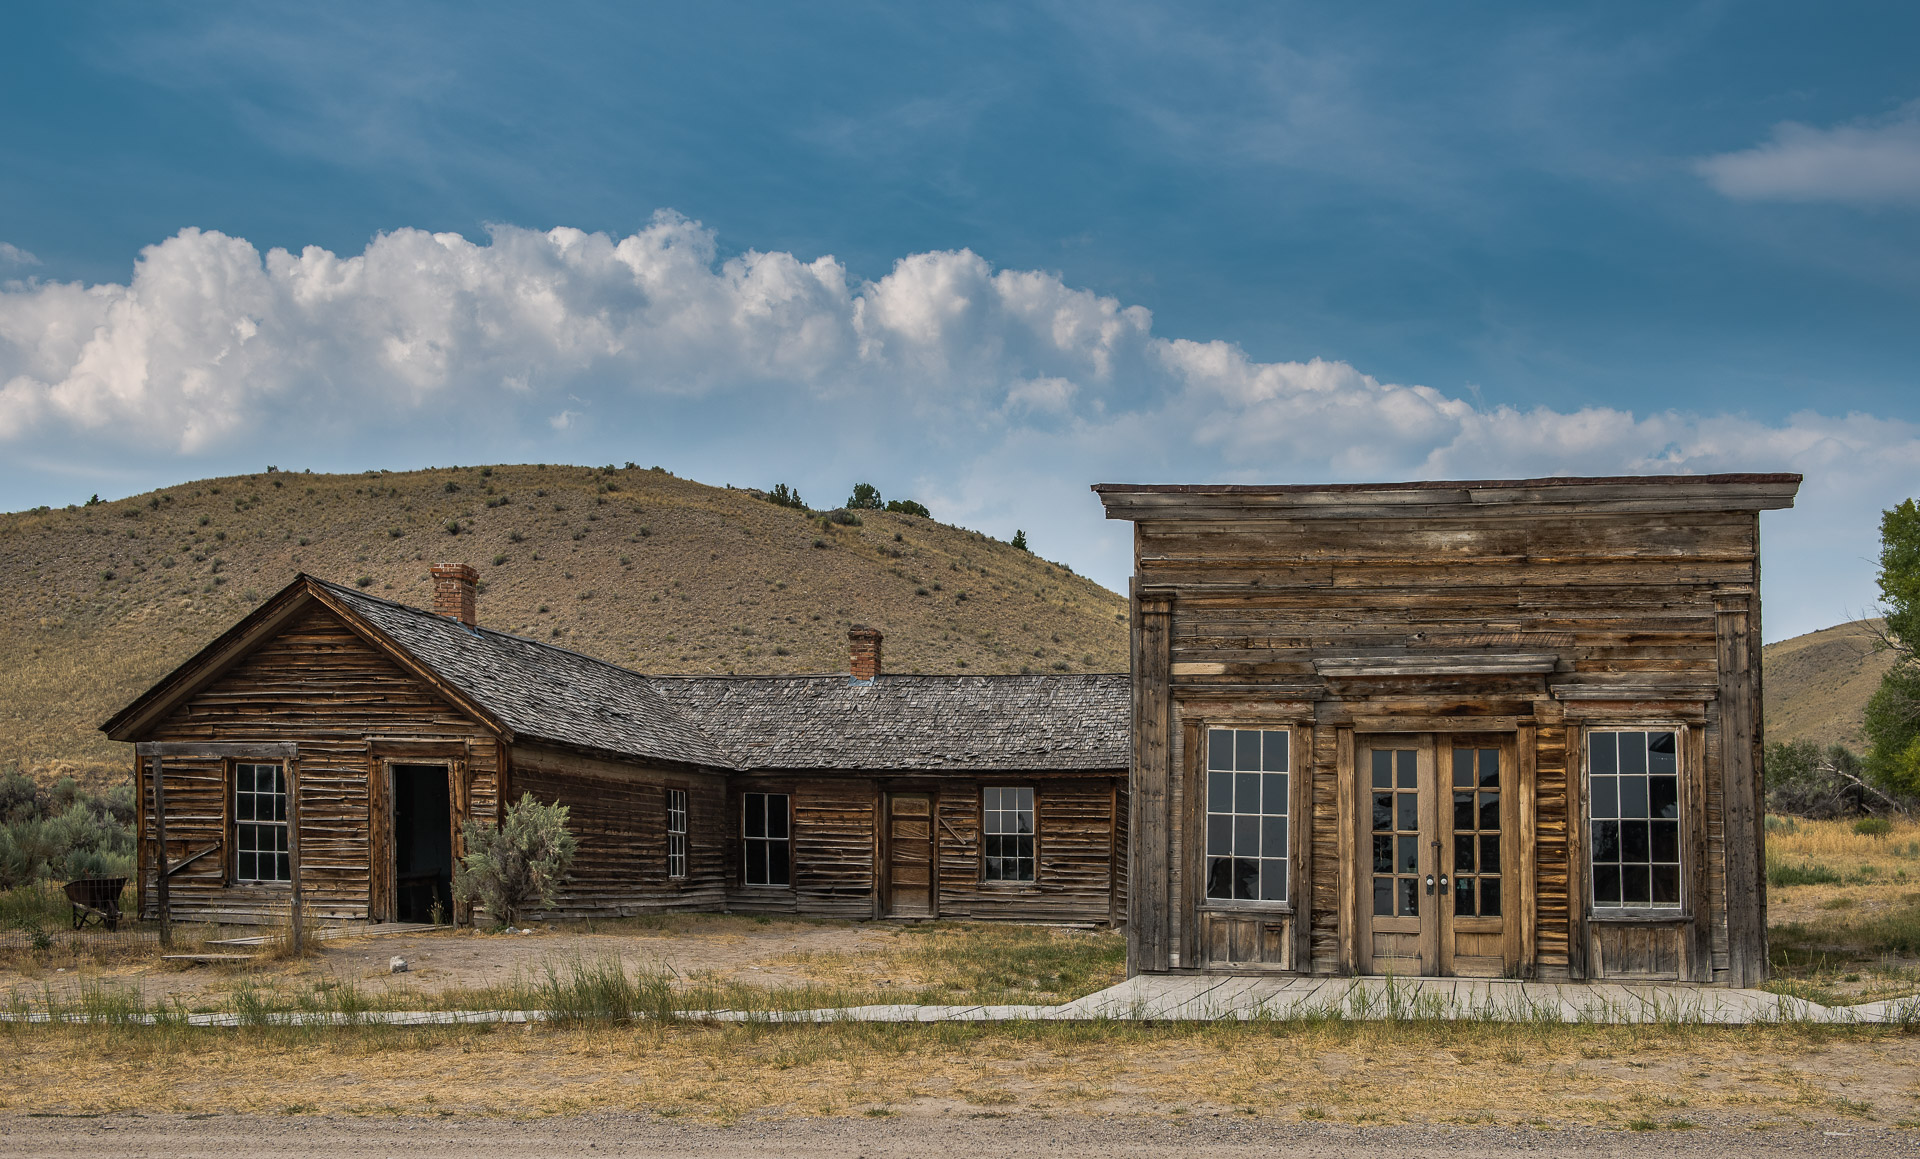 Bannack Ghost Town - Bannack State Park, Montana - Part 5 - Travel Obscura